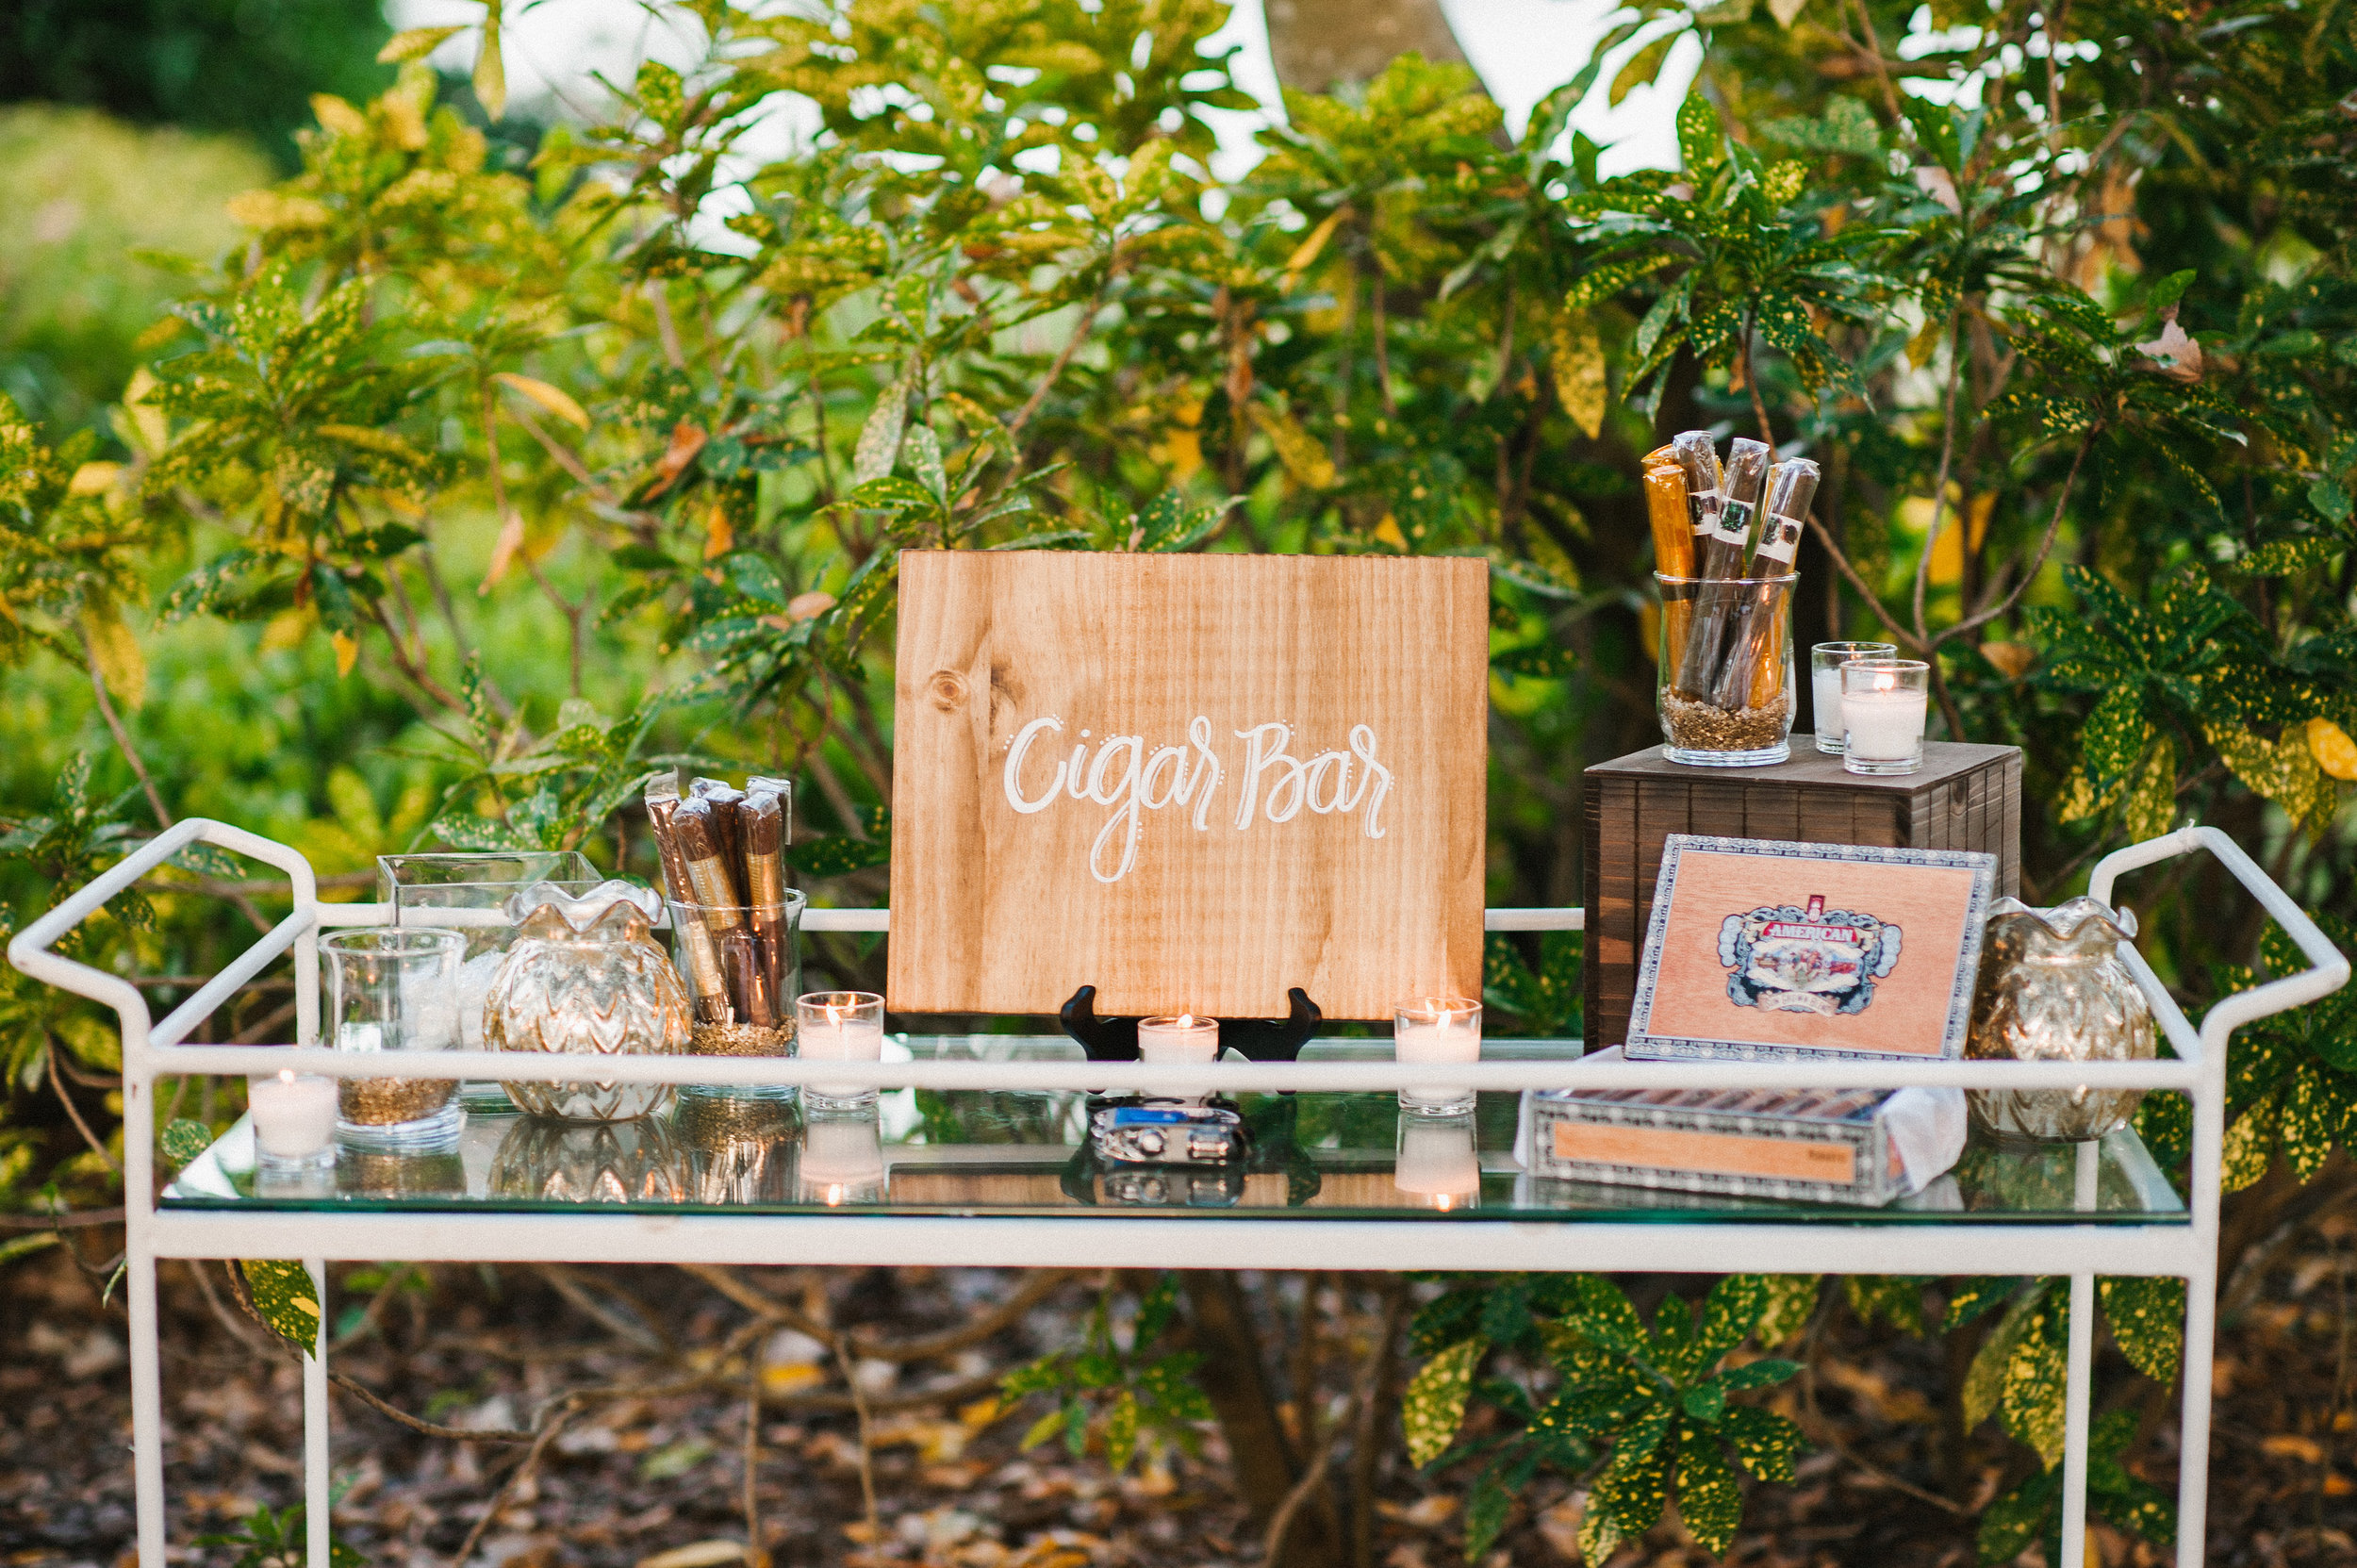 A chic and elegant cigar bar was provided to guests during the cocktail hour and reception.